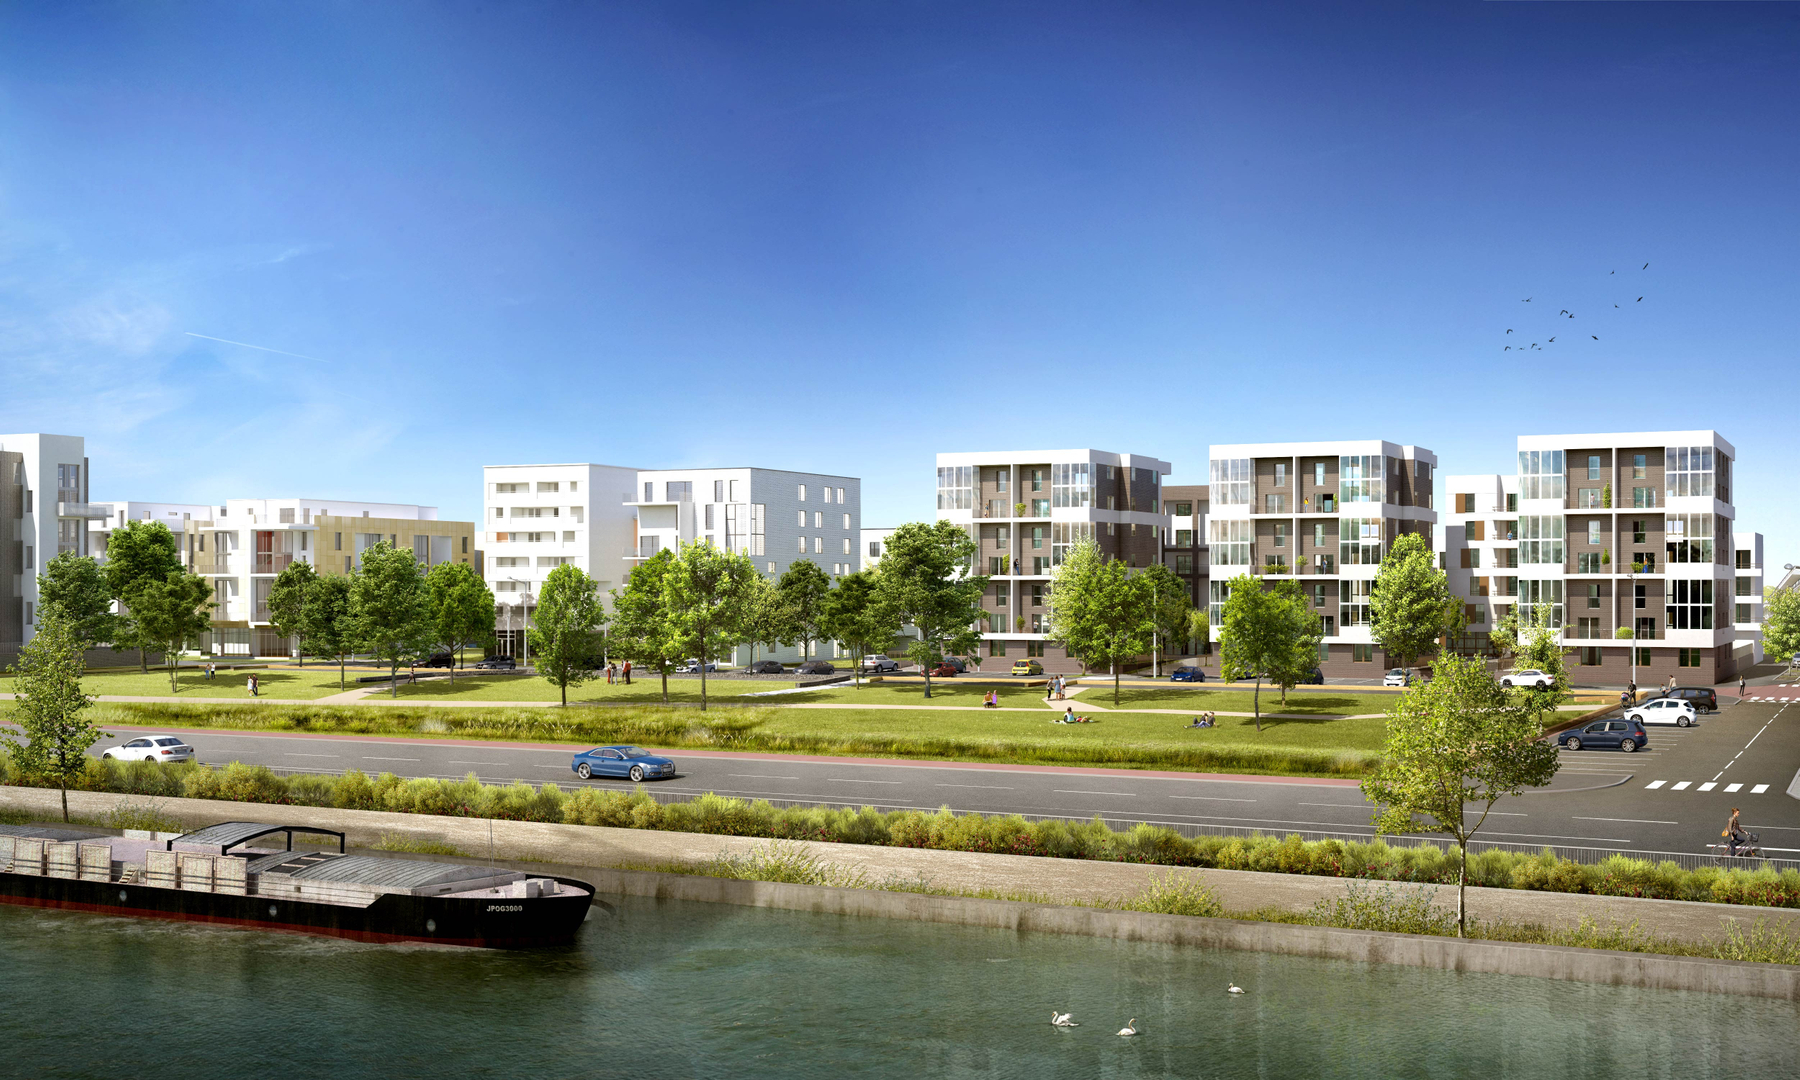 Programme immobilier neuf ATHIS MONS Athis mons | Photo 1/2